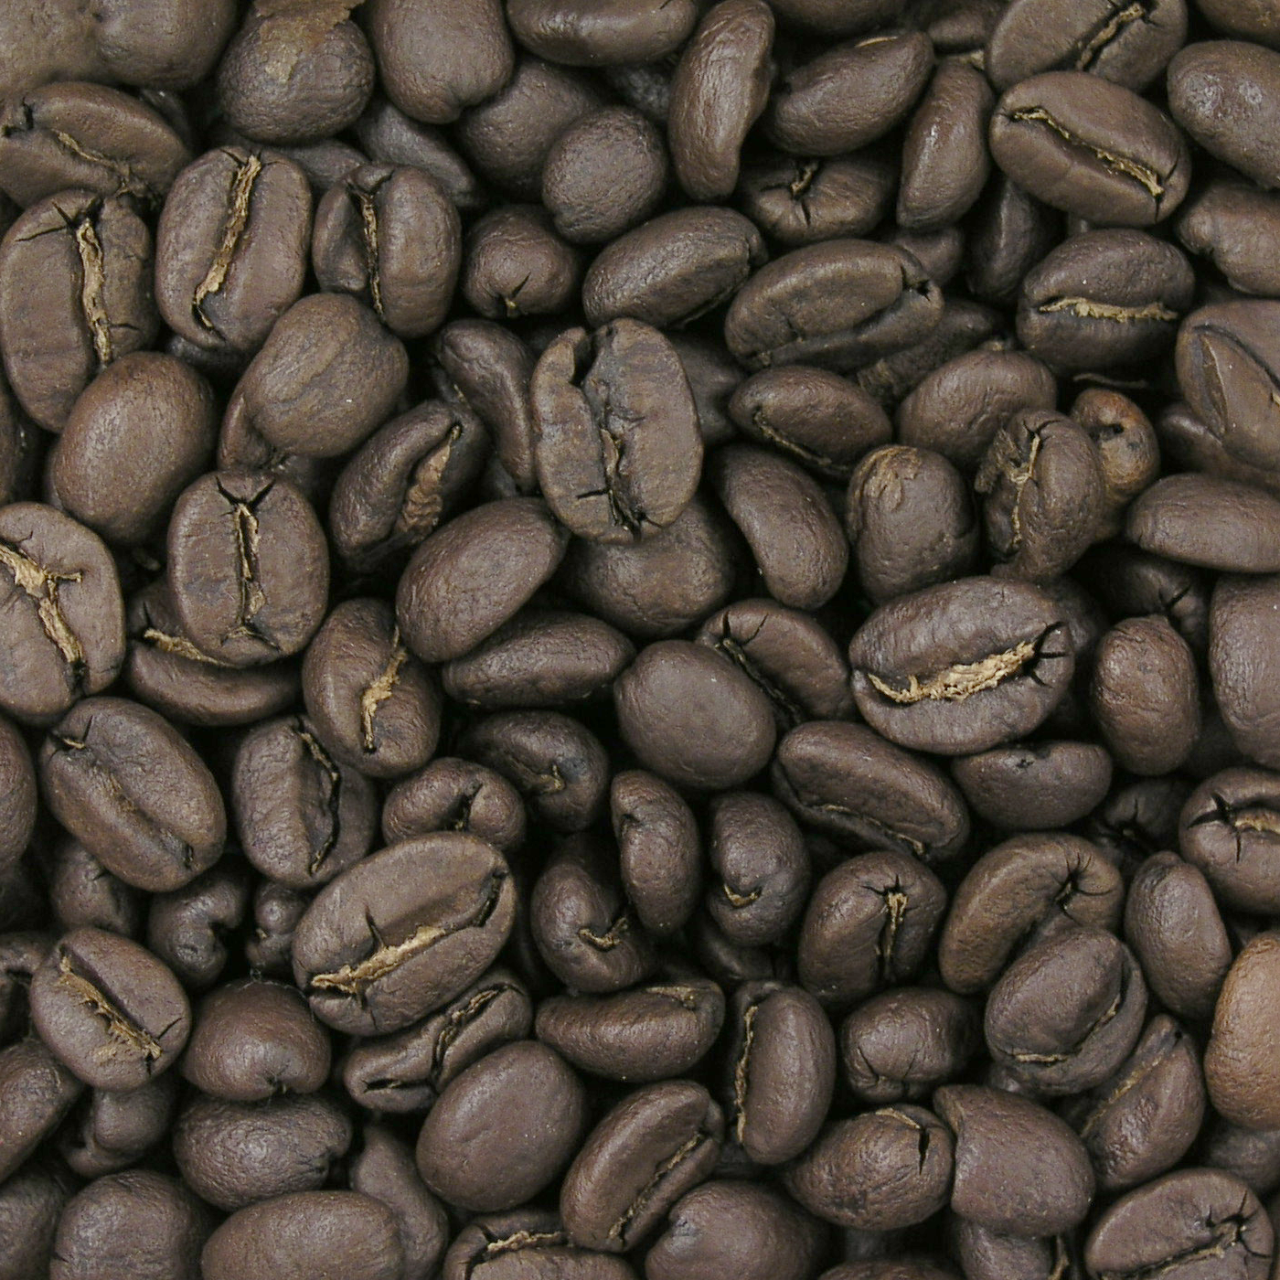 220 °C (428 °F) City Roast Medium brown, the norm for most of the U.S., good for tasting the varietal character of a bean.